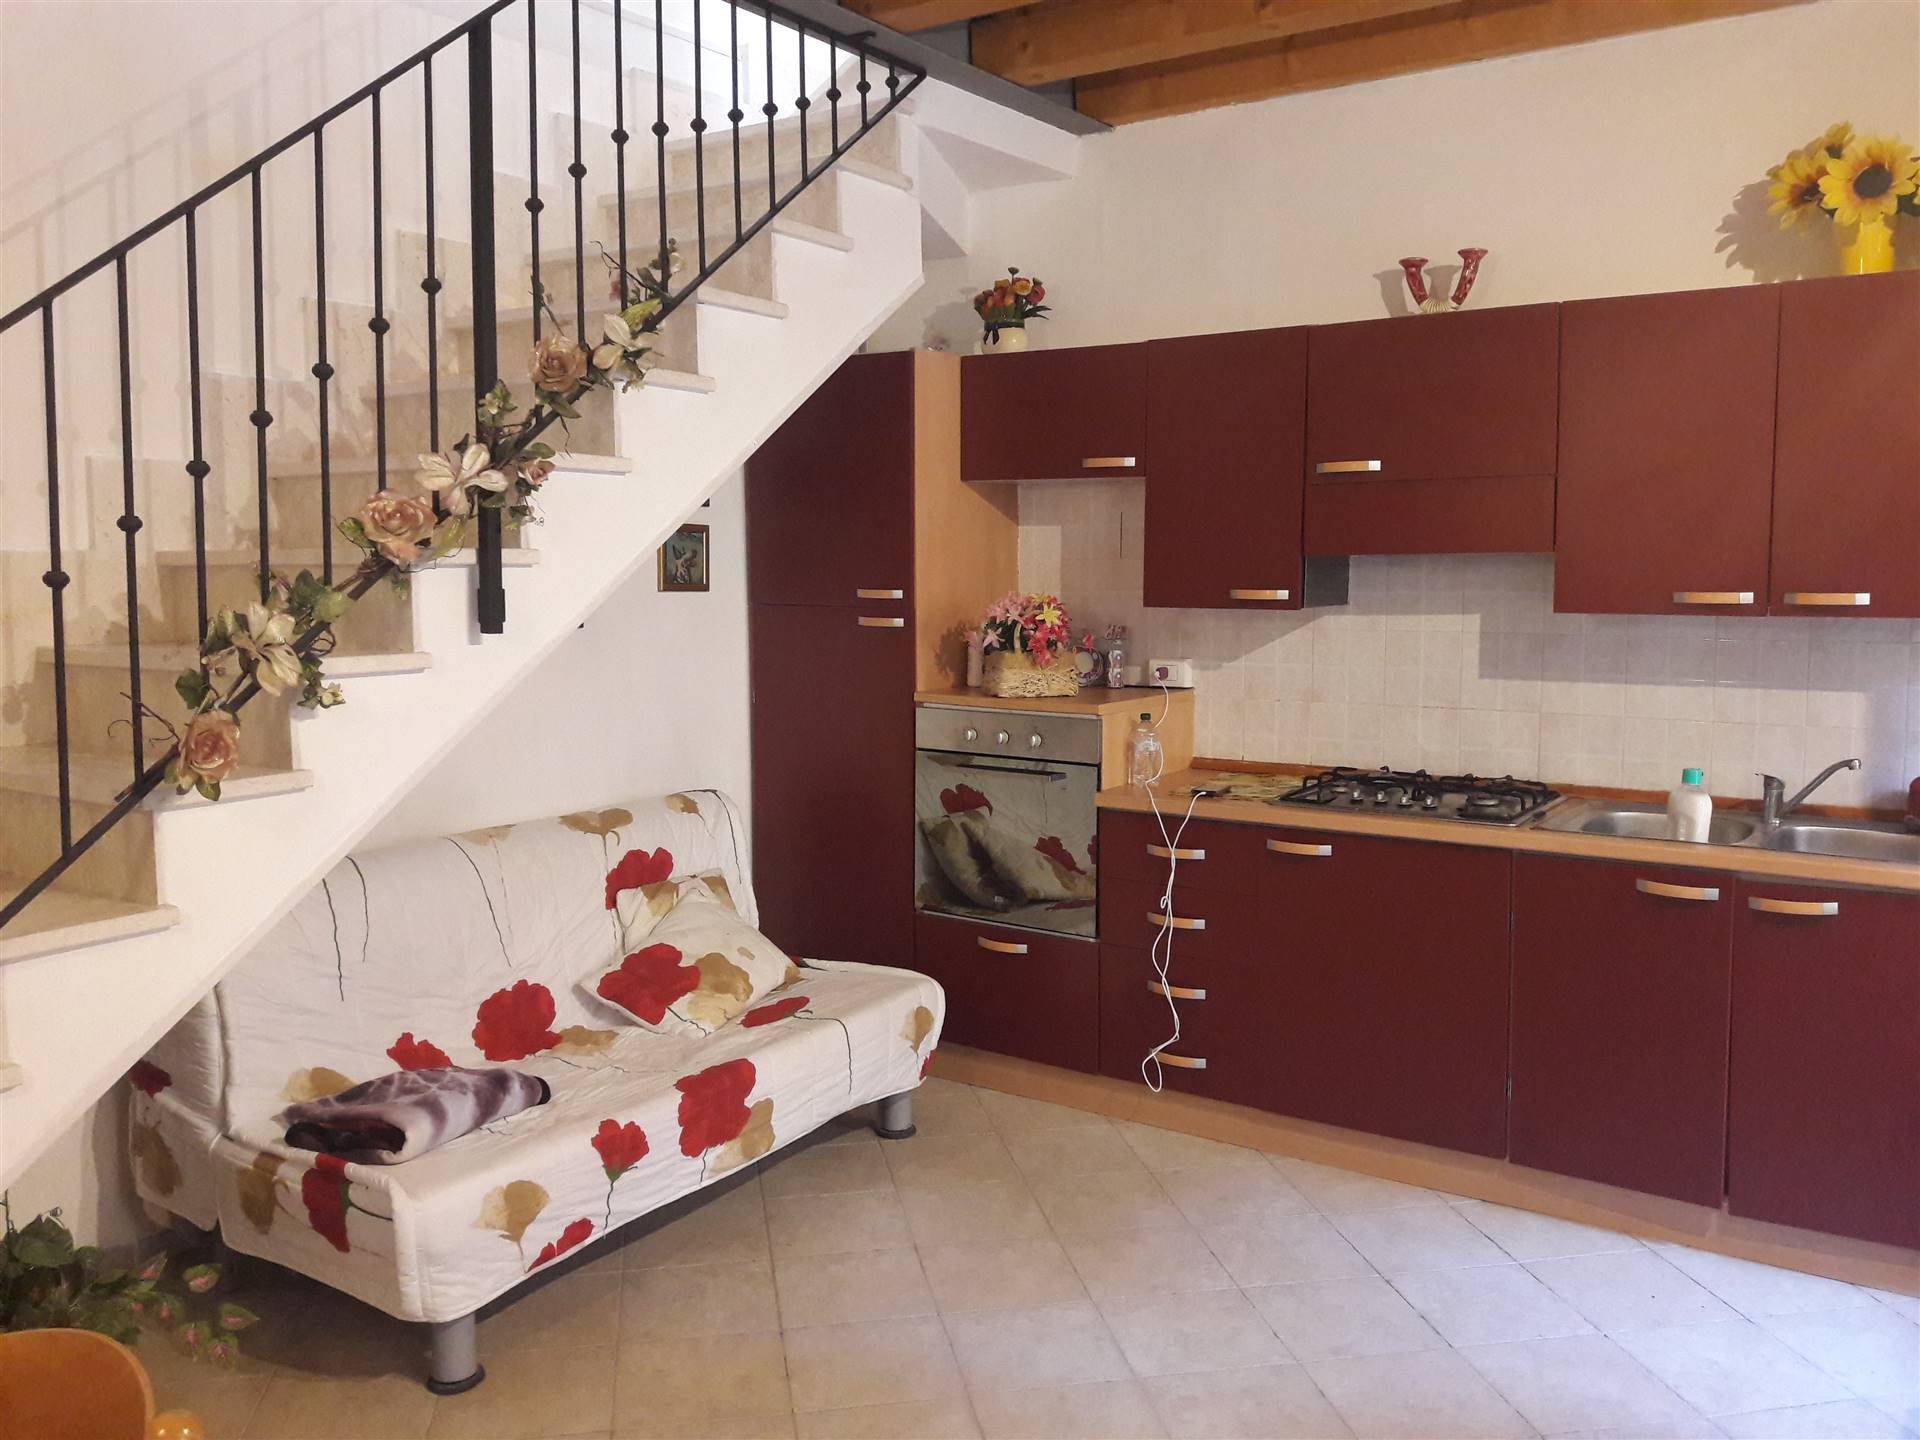 SOTTOMARINA, CHIOGGIA, Apartment for sale of 50 Sq. mt., Restored, Heating Individual heating system, Energetic class: E, Epi: 157,873 kwh/m2 year,